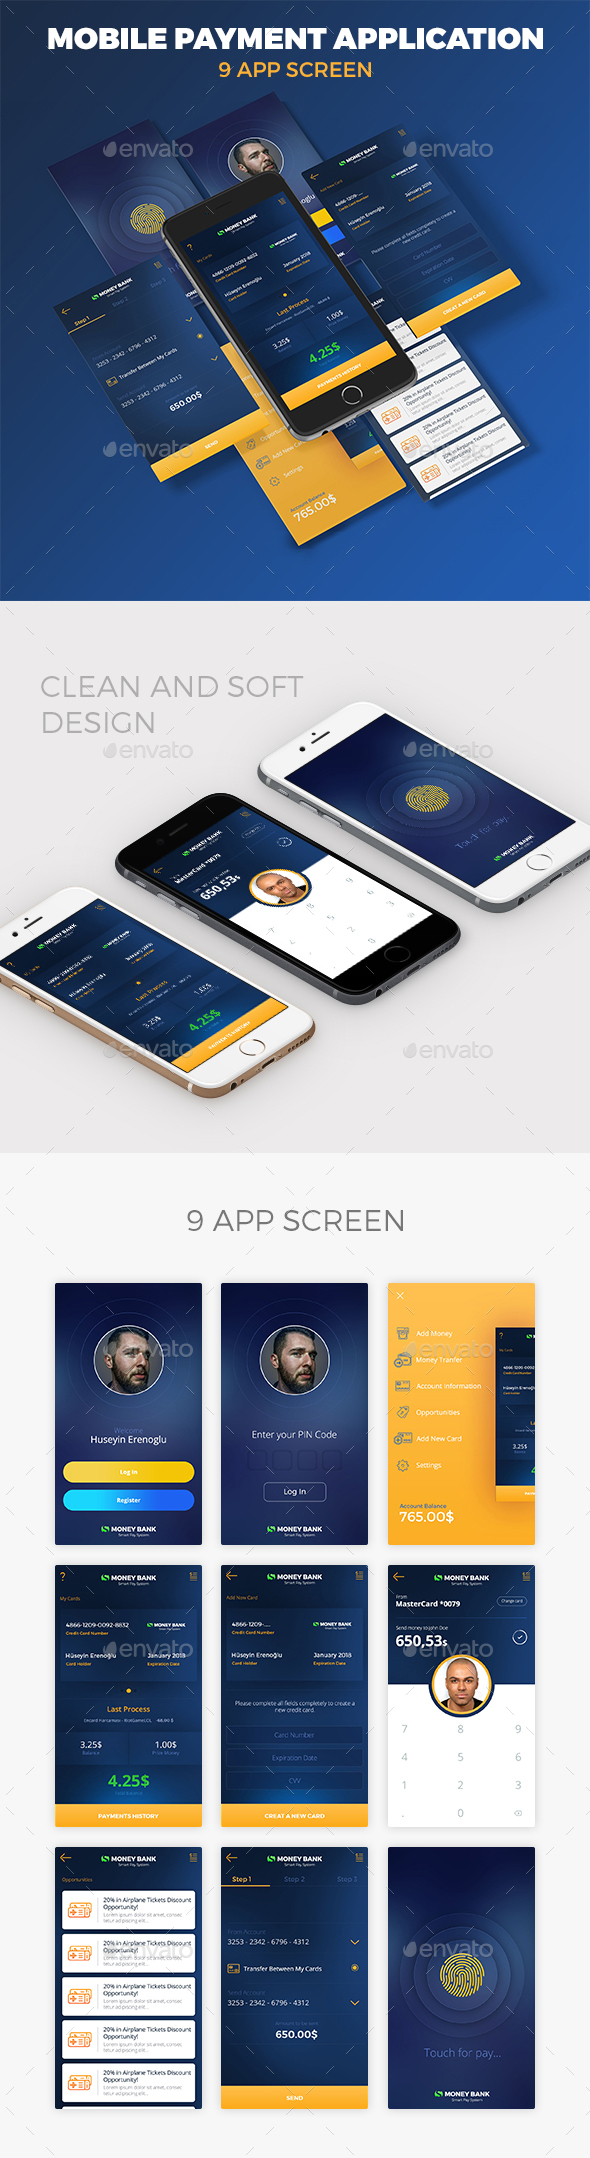 Walkthroughs - Mobile Template UI kit (User Interfaces)